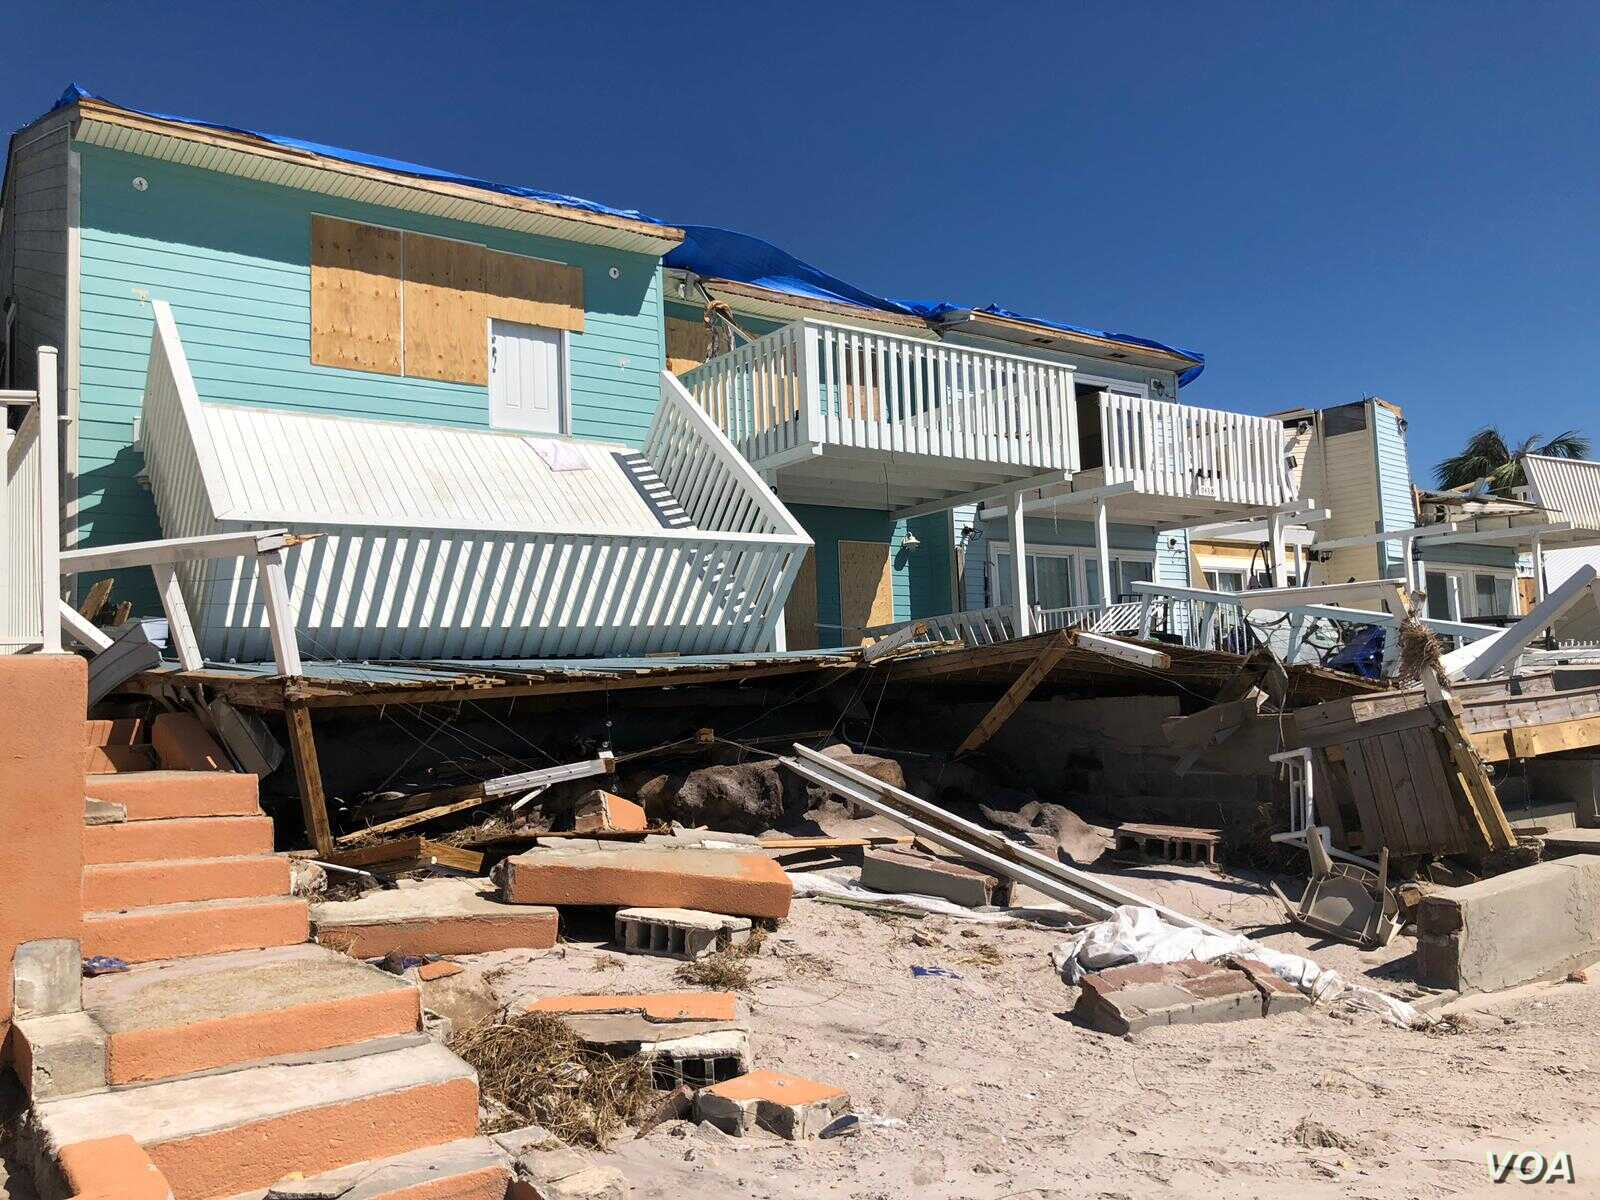 Scenes of devastation in Mexico Beach, Florida in the aftermath for Hurricane Michael. (Jose Pernalete and Jorge Agobián)